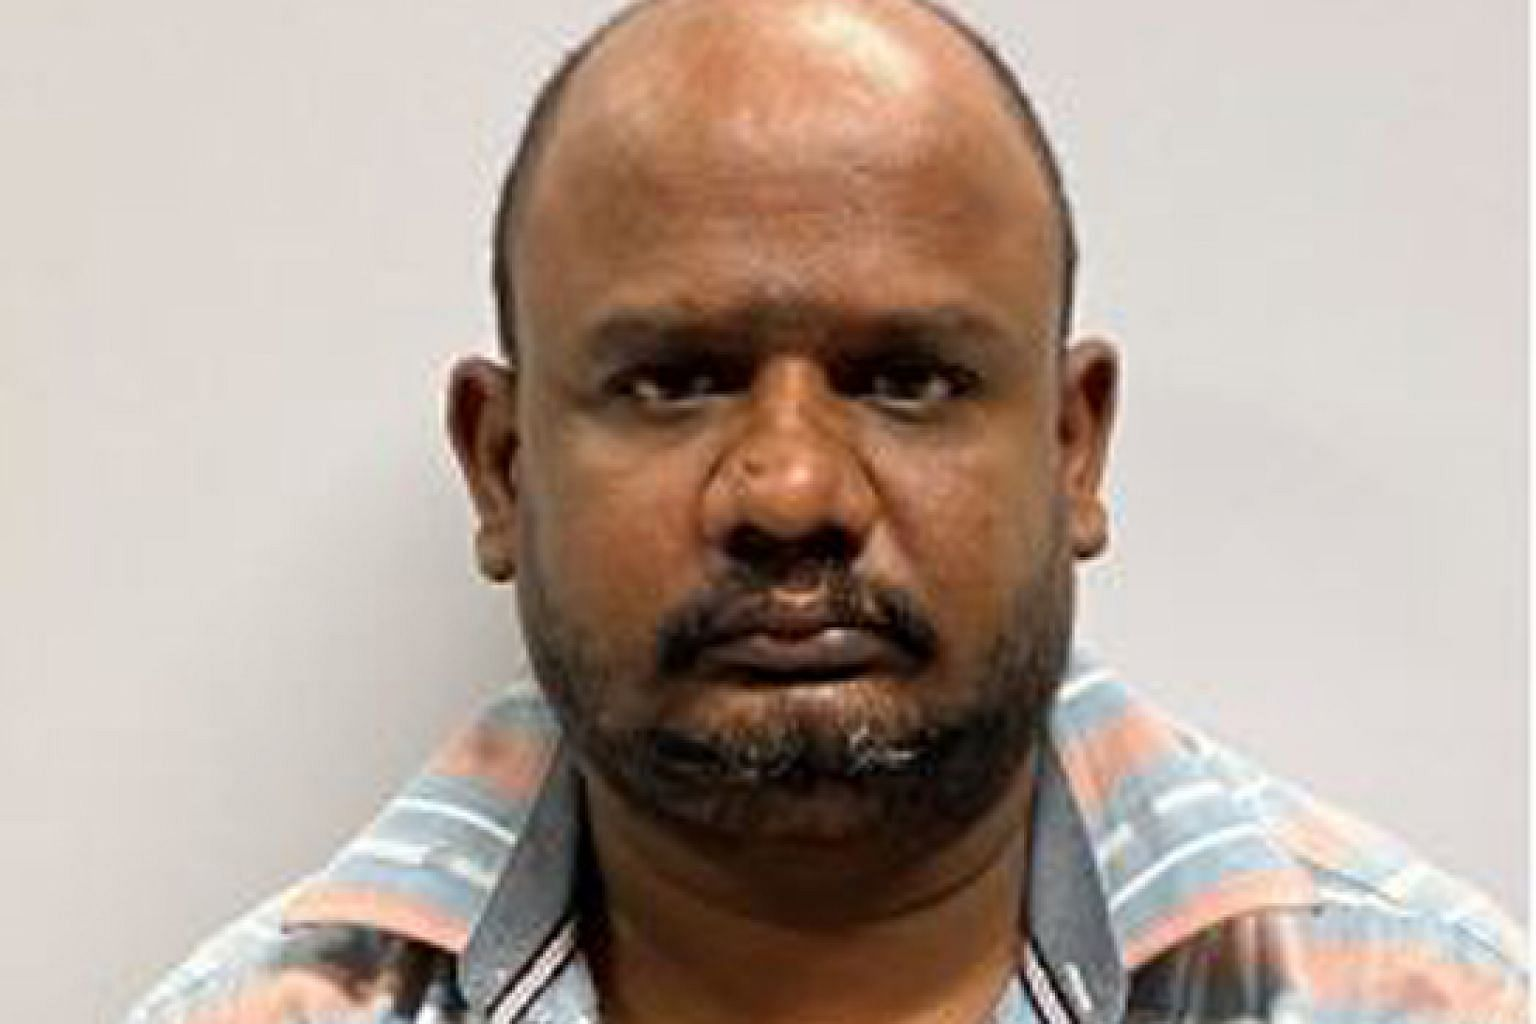 Muthuvel Sankar, identified as a person of interest by the CPIB in 2014, was nabbed on his return to Singapore.